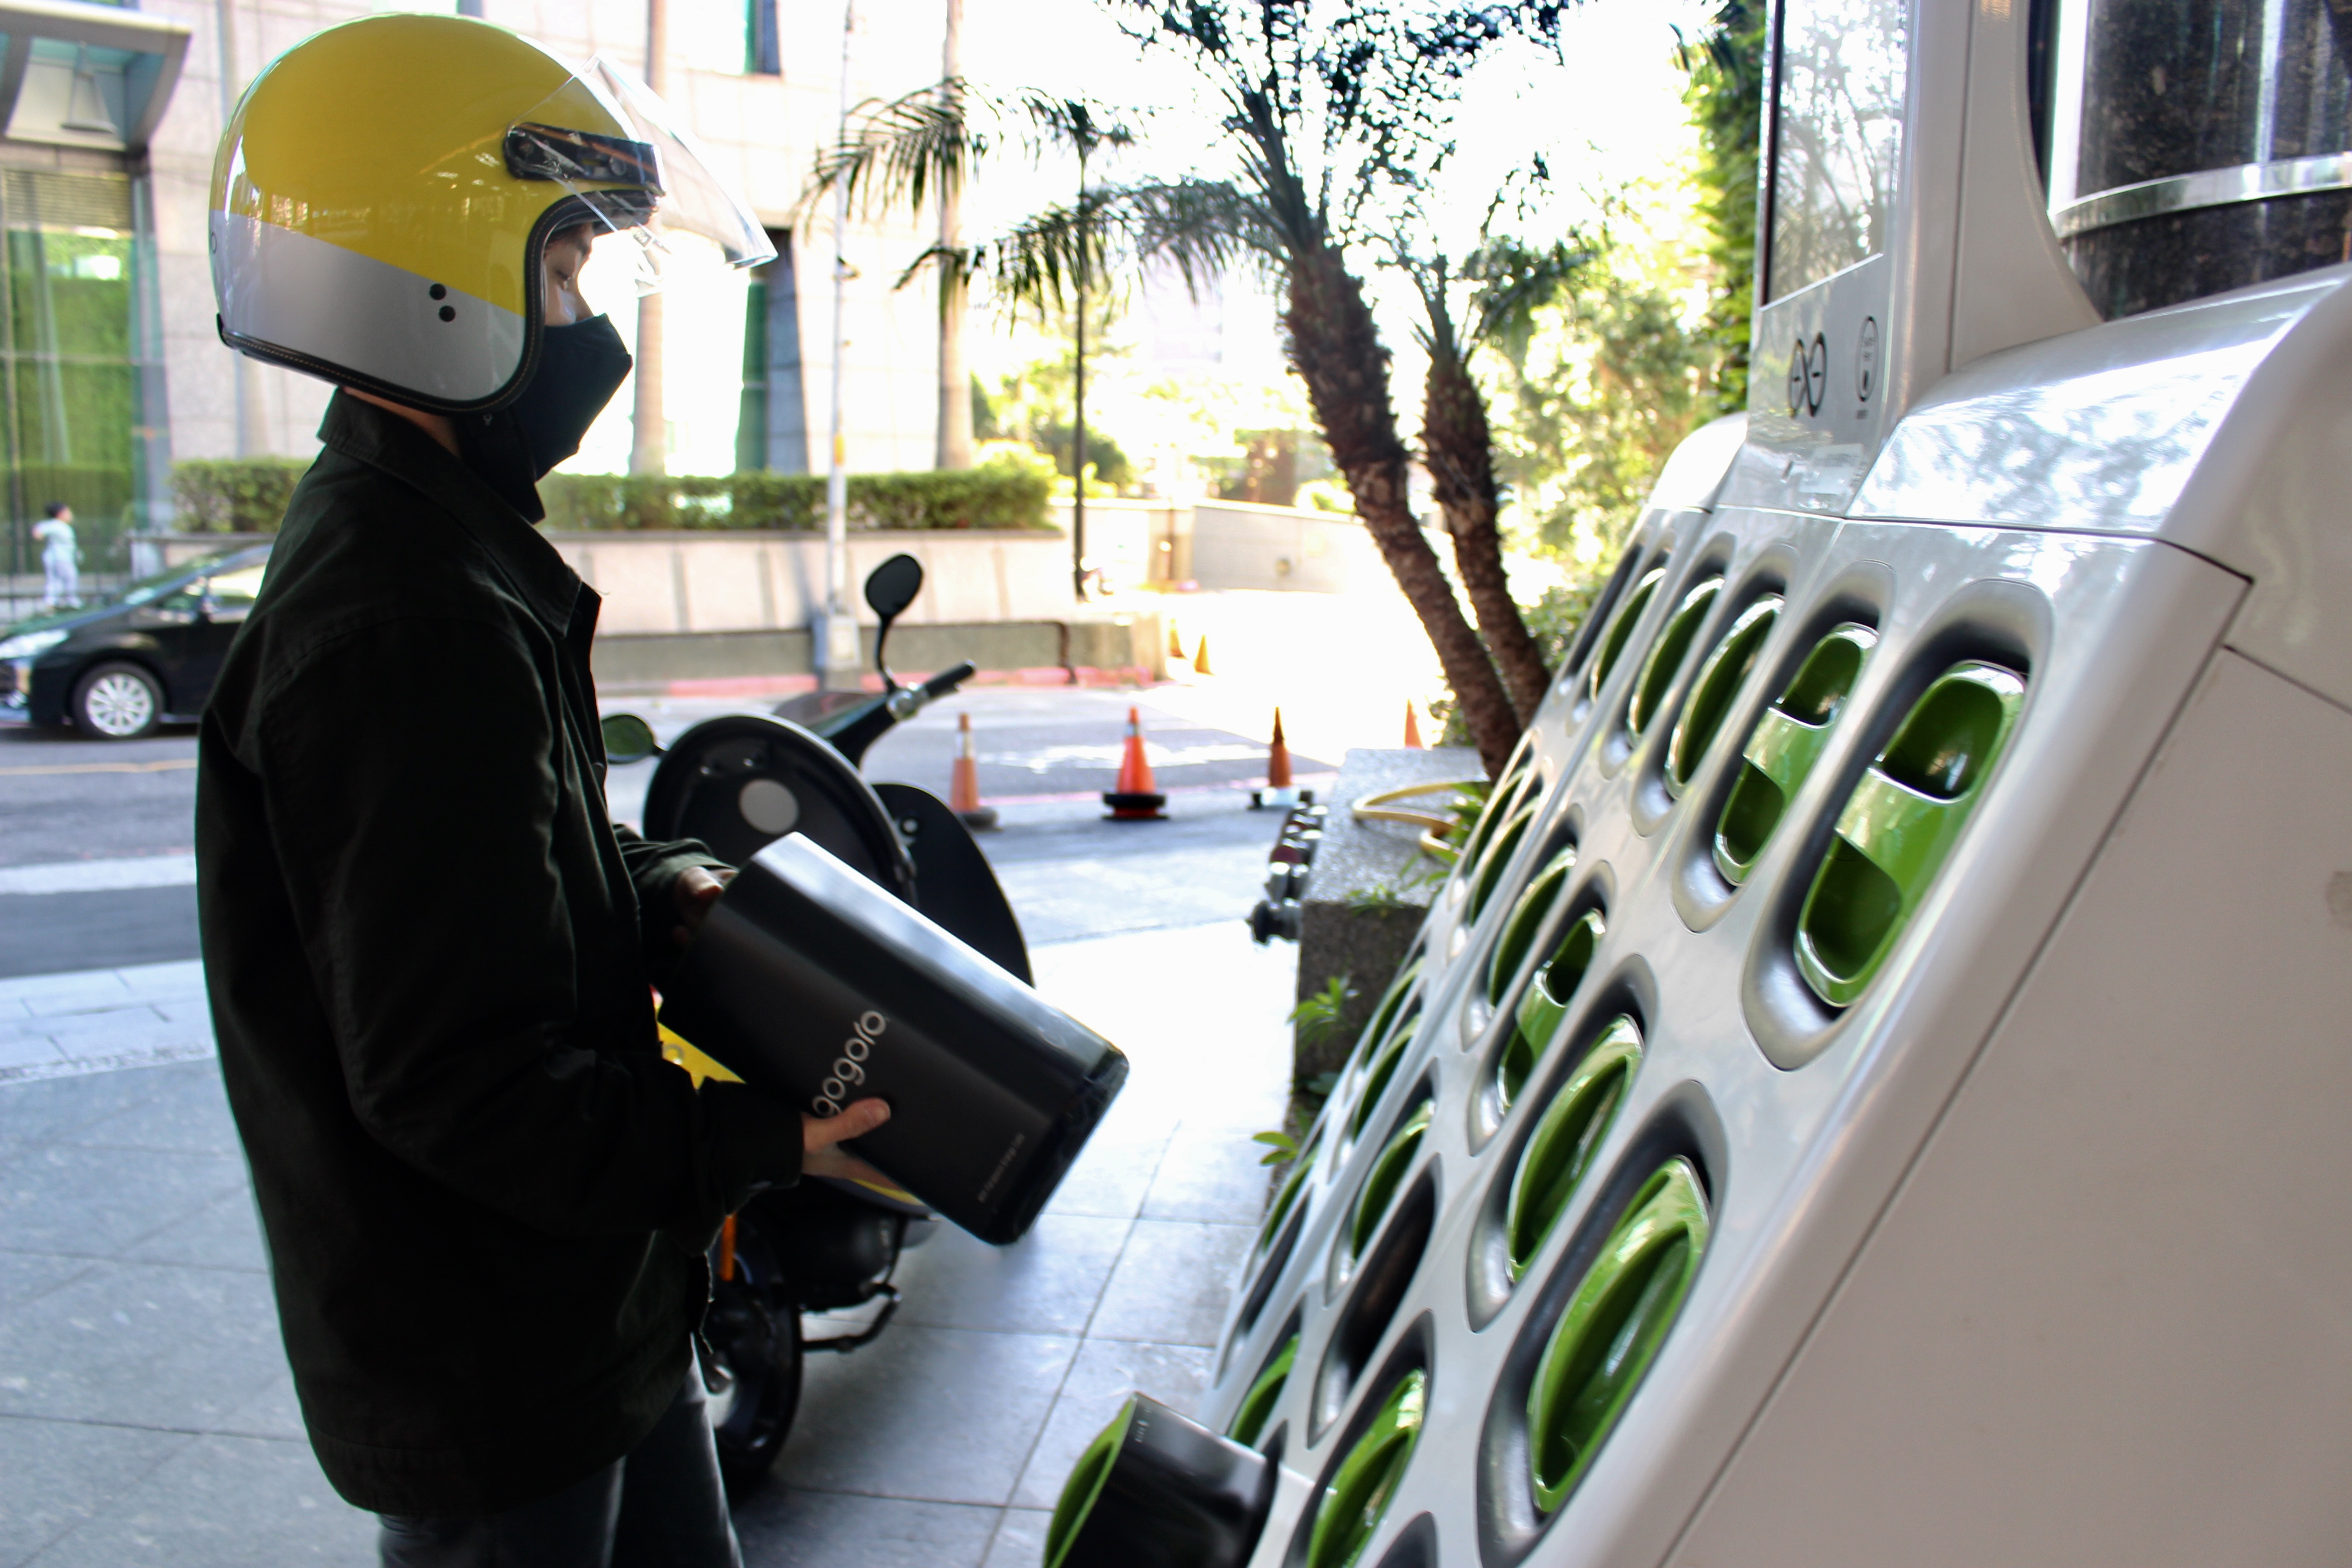 The gogoro electric scooter need to change two batteries. Photo/Hu, Fan(胡凡)